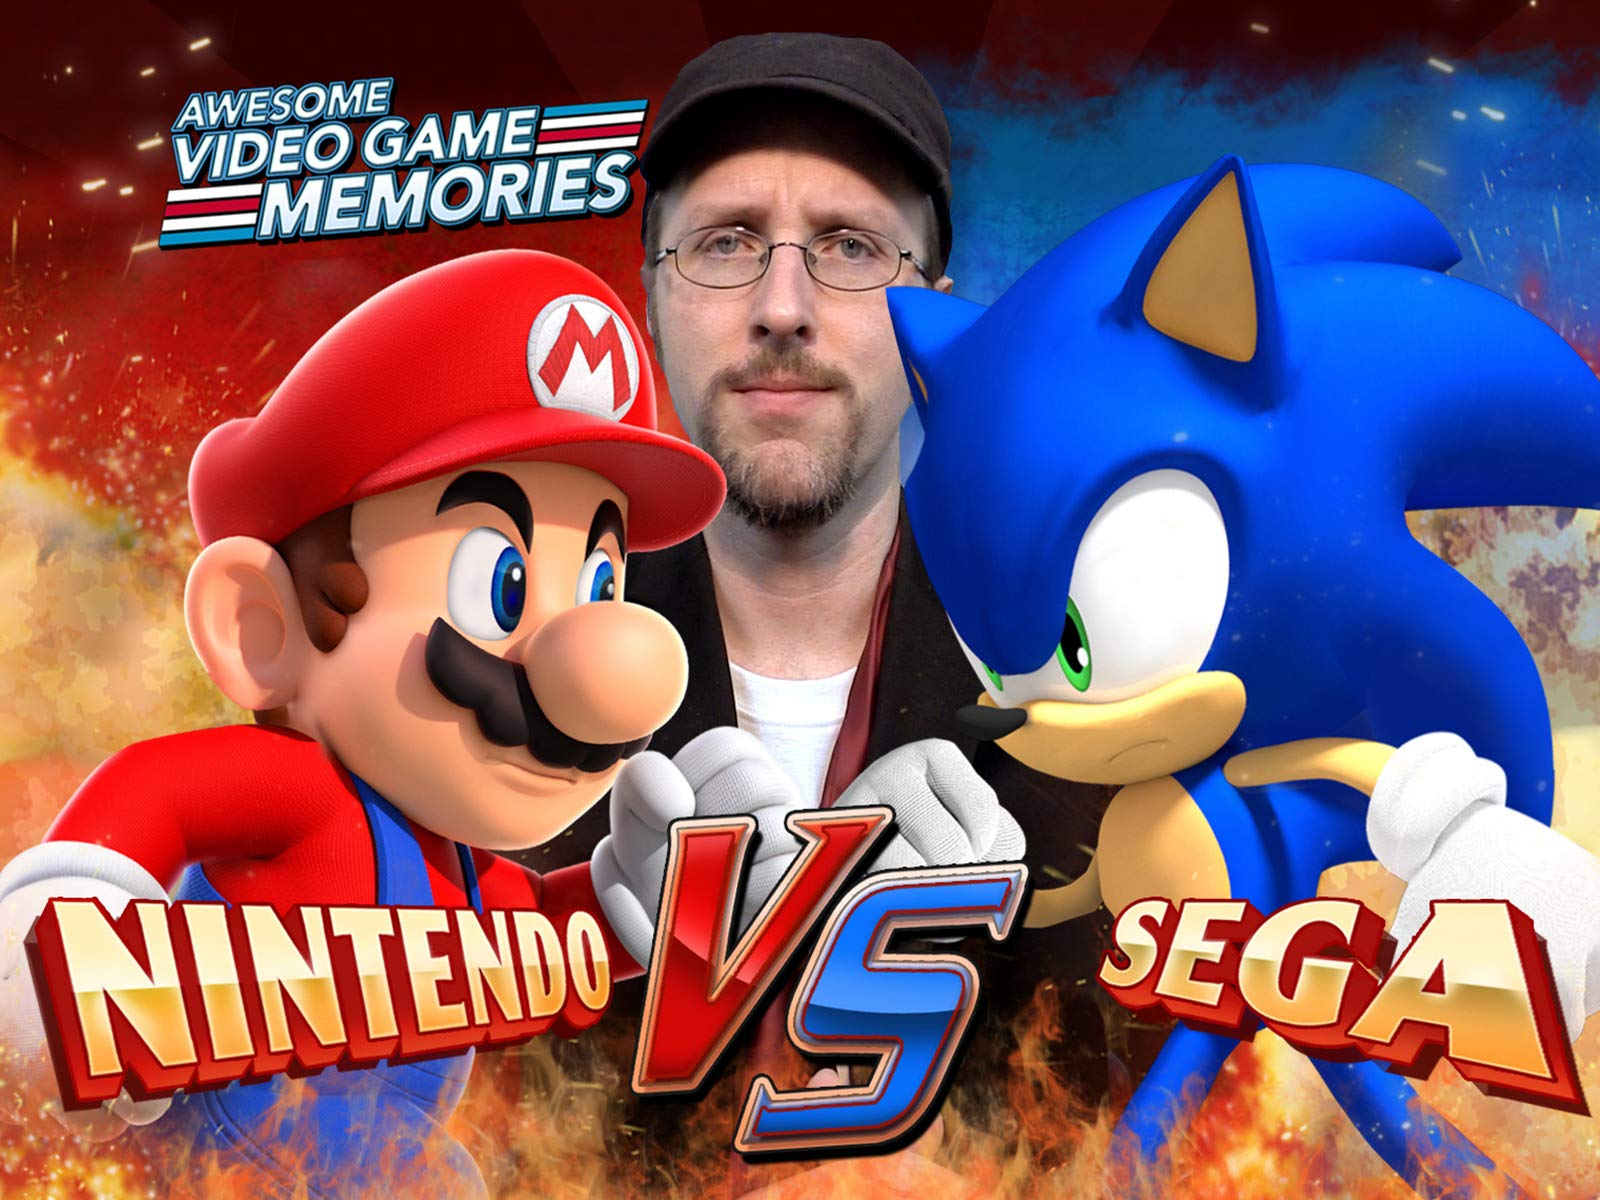 Amazon.com: Watch Awesome Video Game Memories | Prime Video